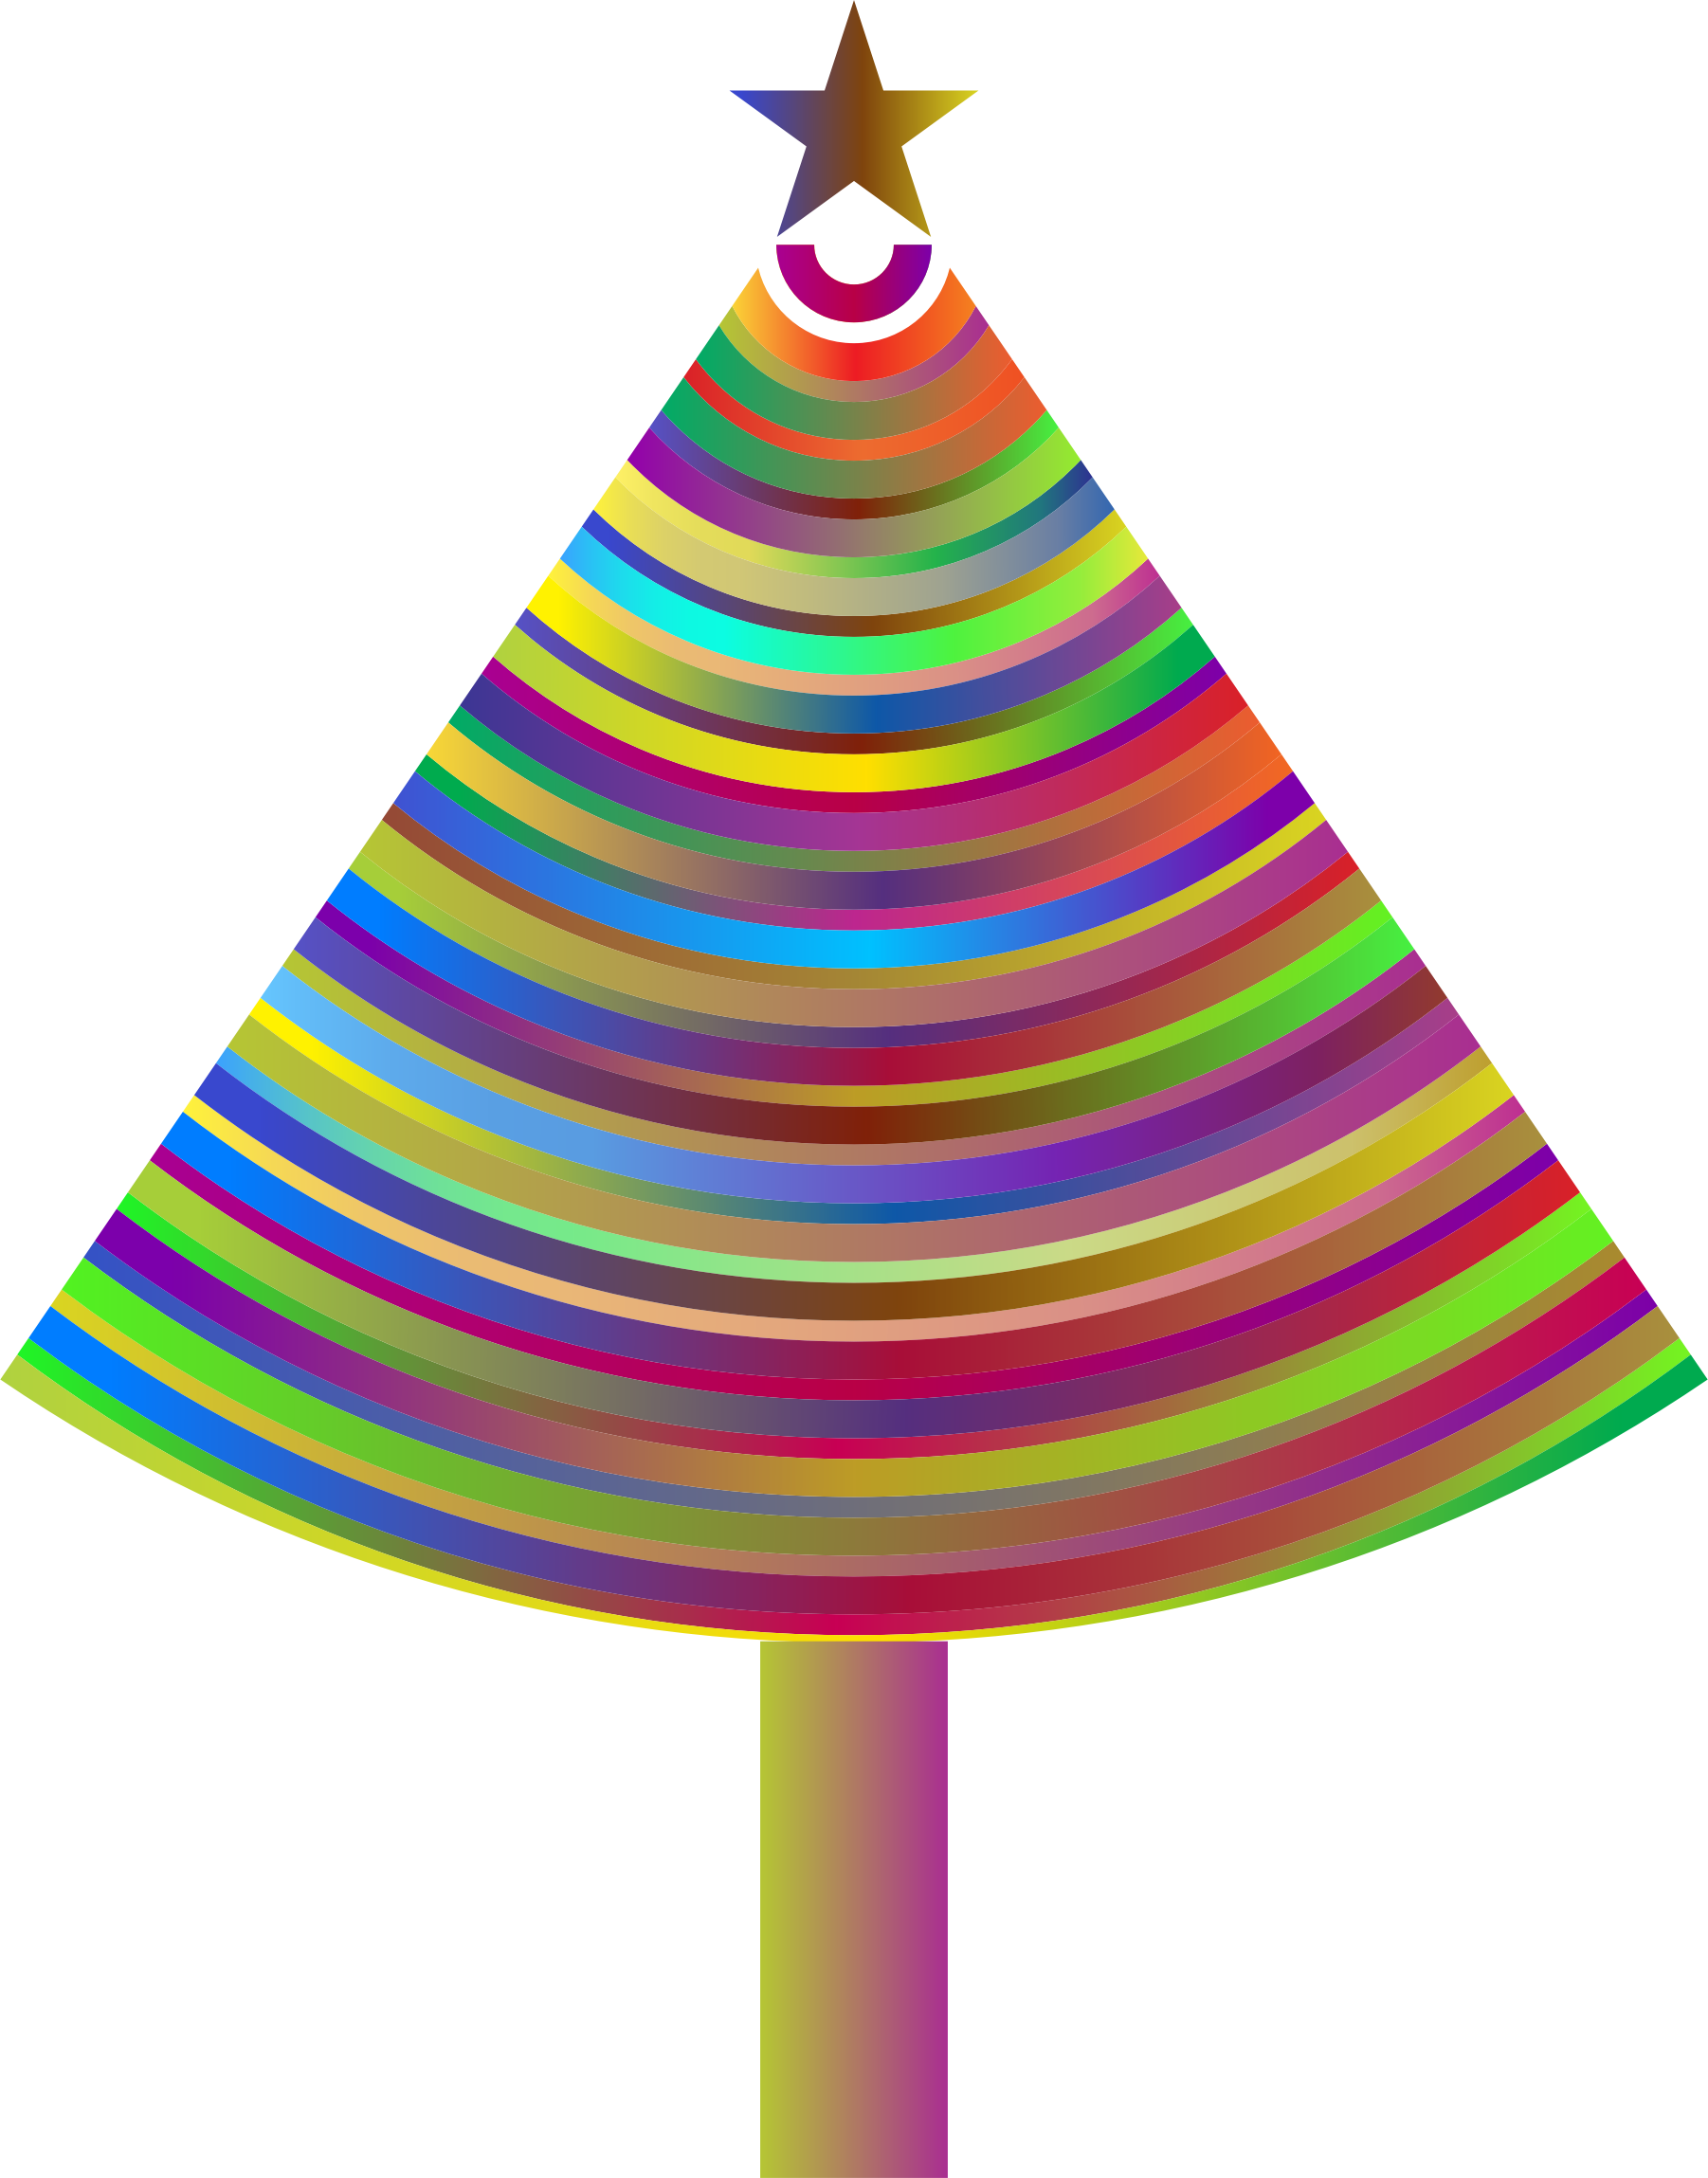 Prismatic Abstract Christmas Tree 3 by GDJ